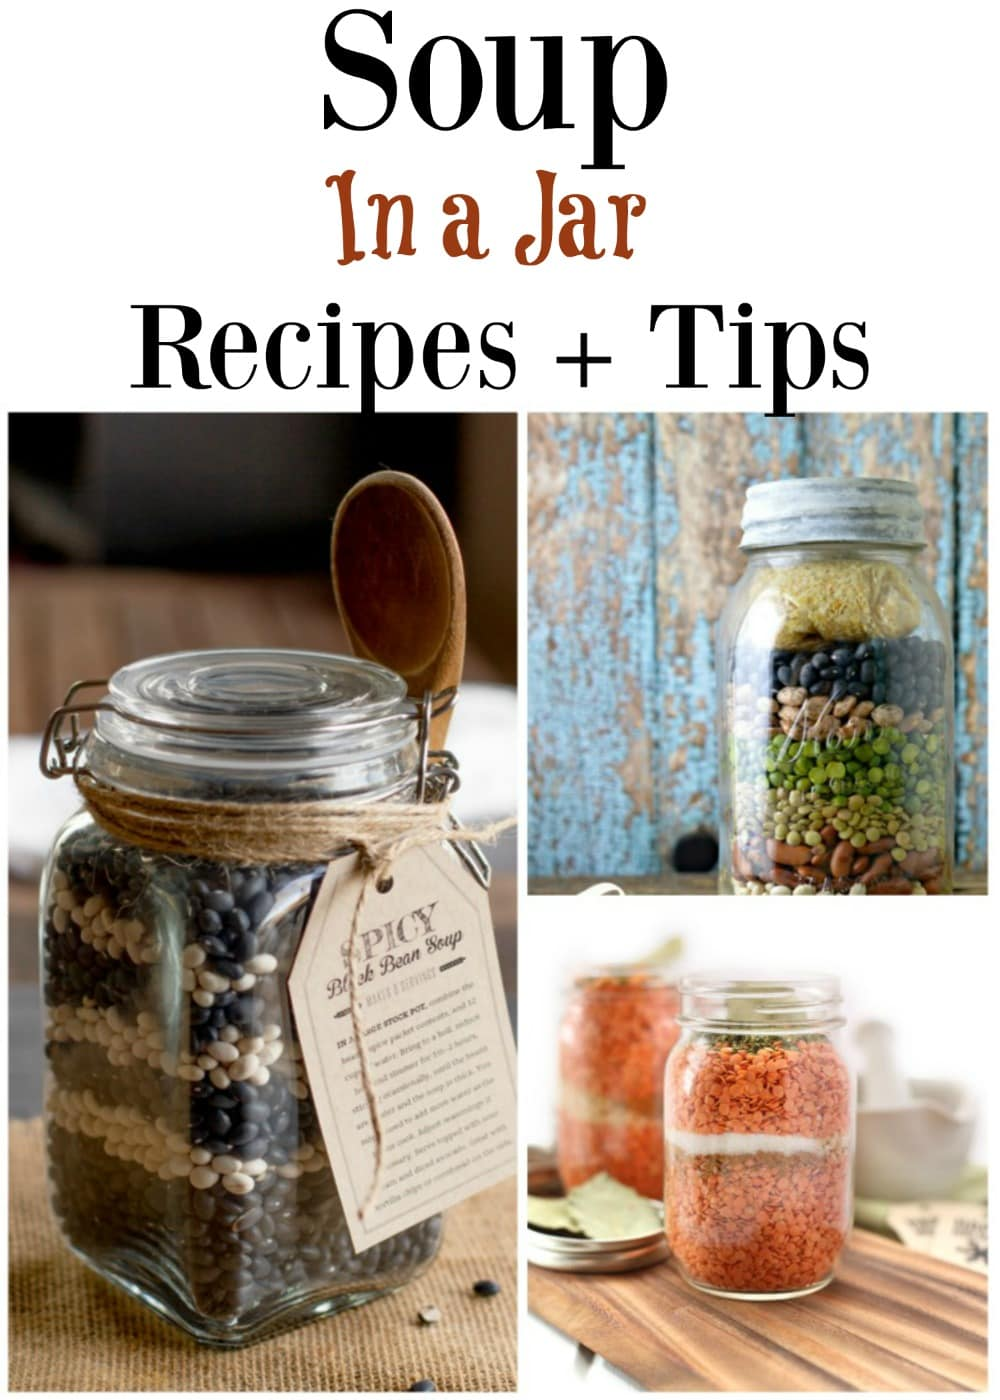 Soup in a jar recipes